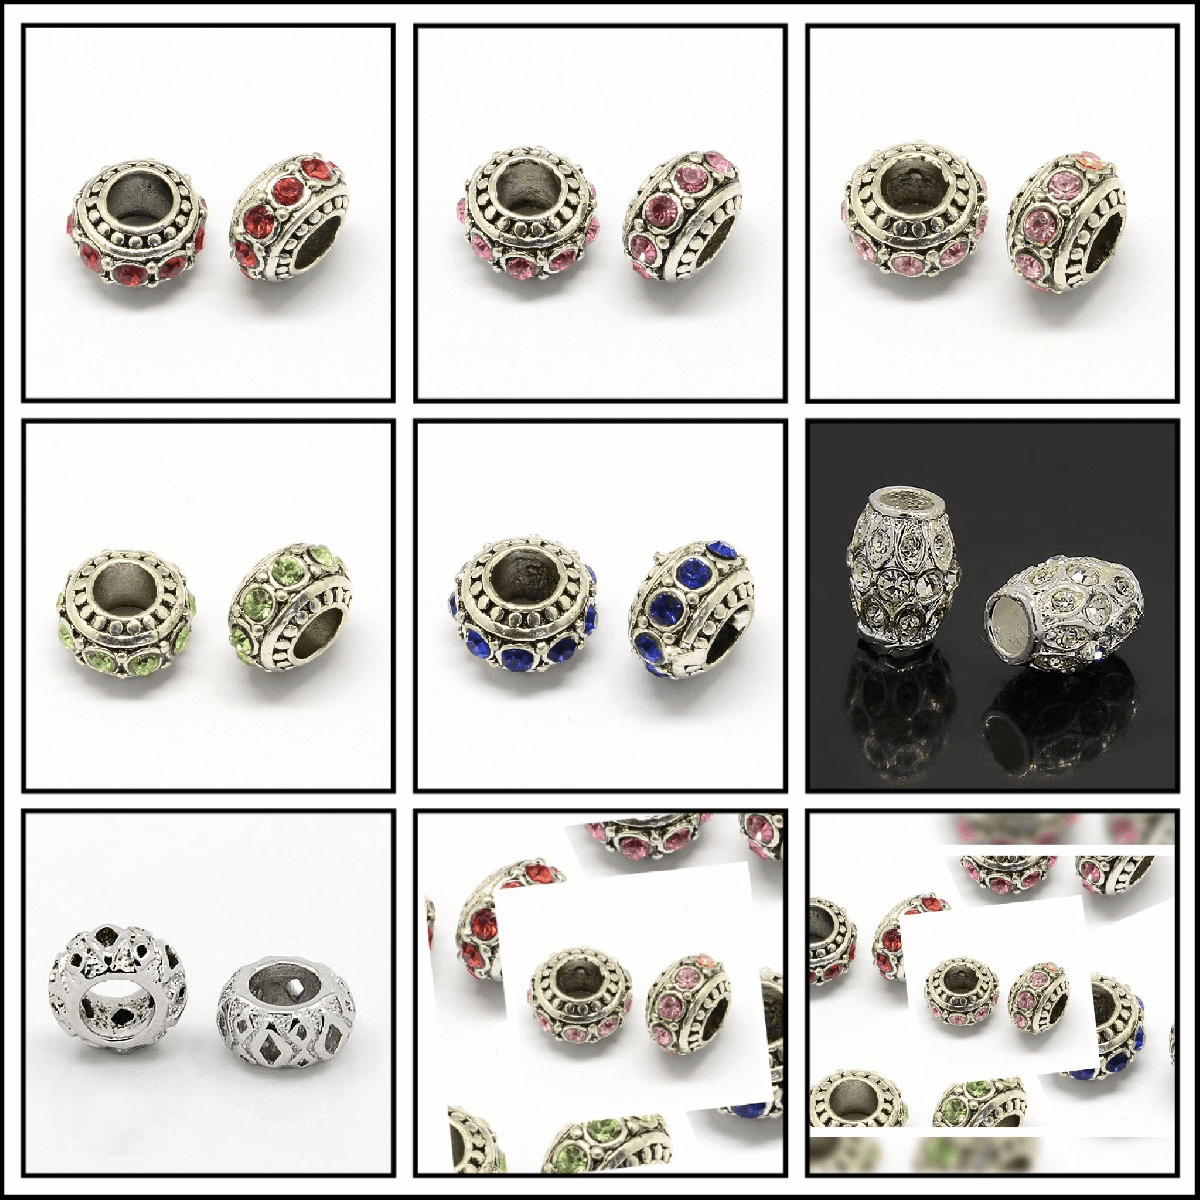 Rhinestone European Beads, Rondelle Large Hole Beads, 11x7mm, Hole: 5mm